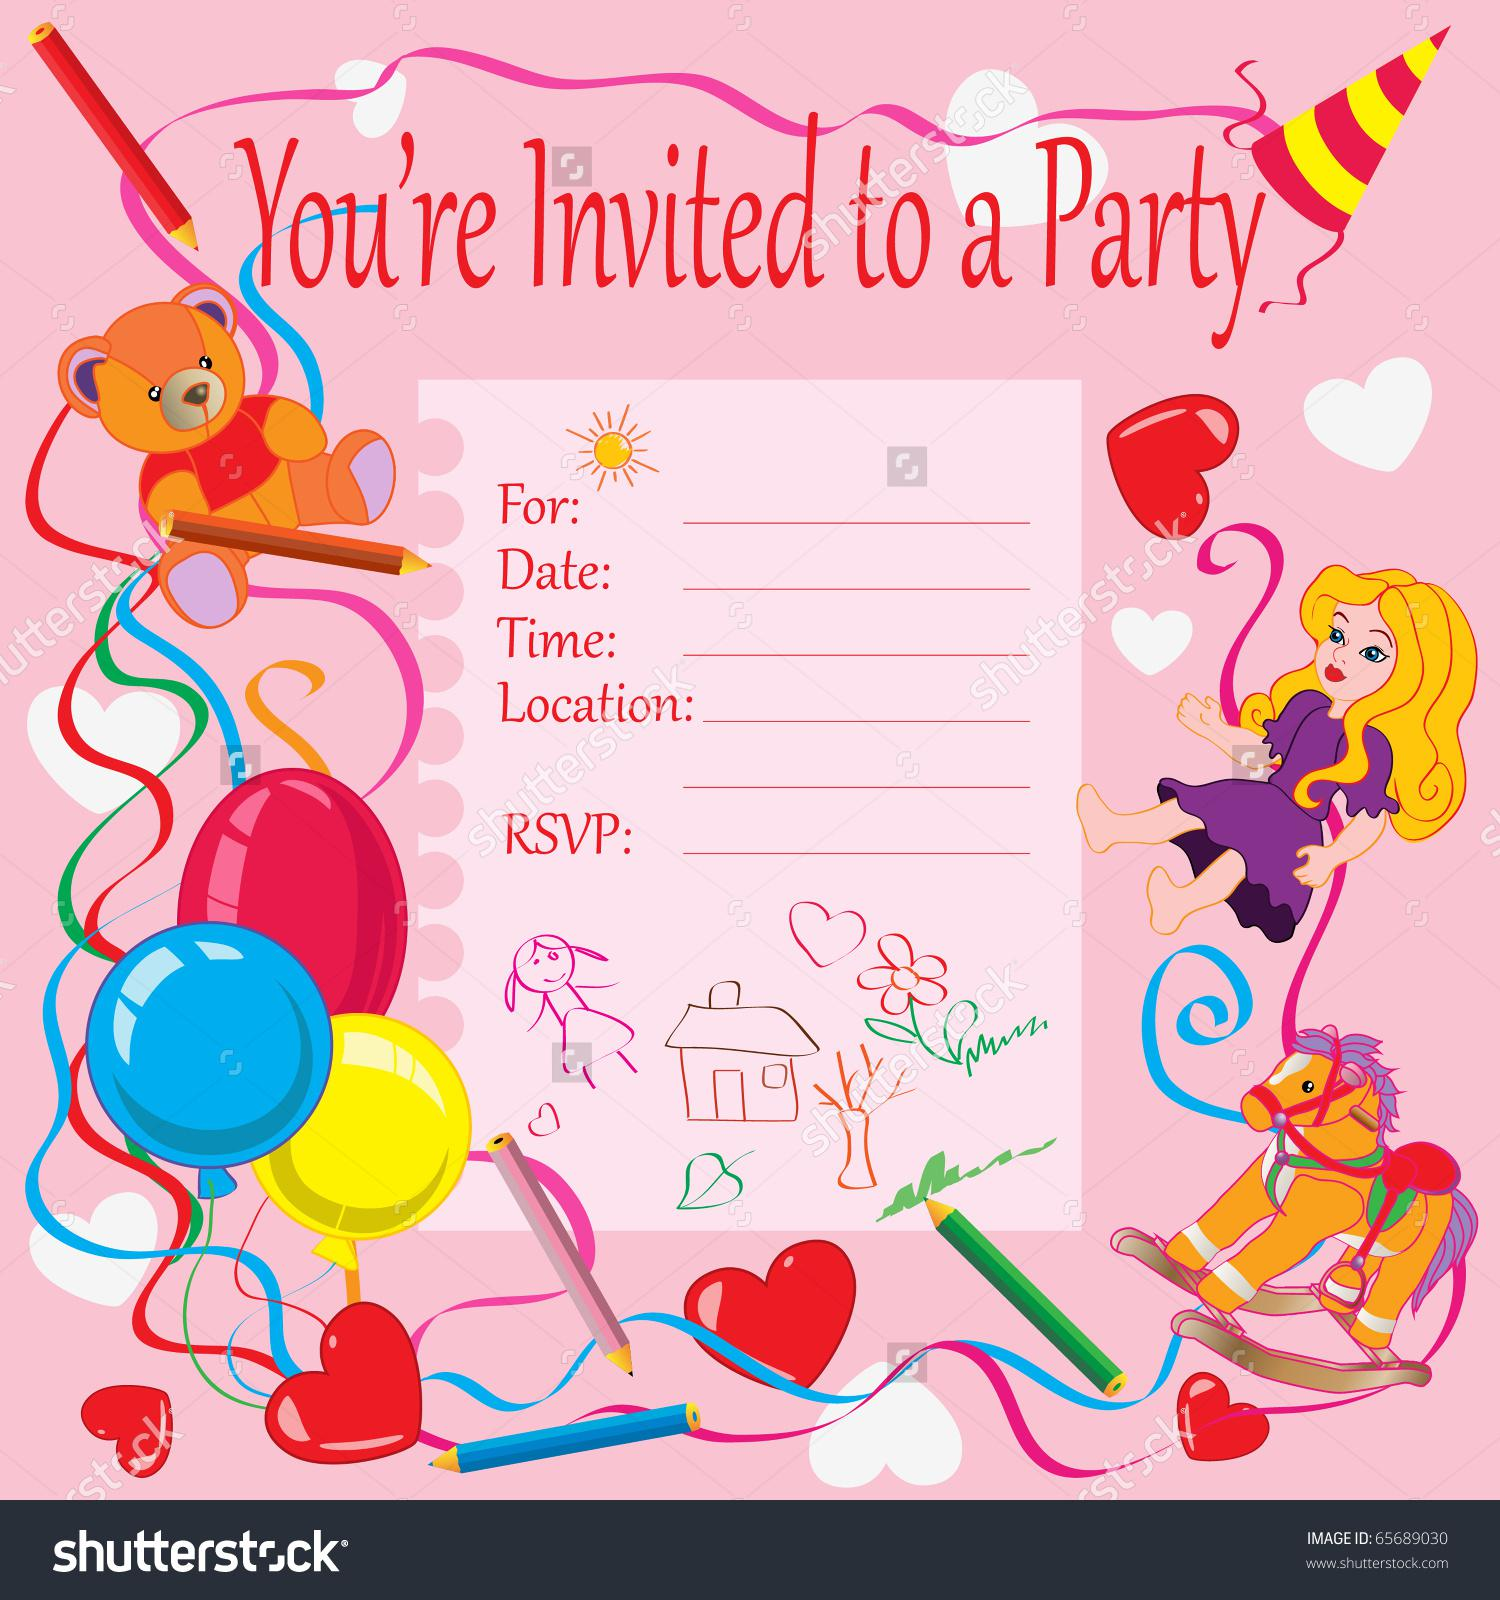 4 Step Make Your Own Birthday Invitations Free Sample Printable – Sample Kids Birthday Invitation